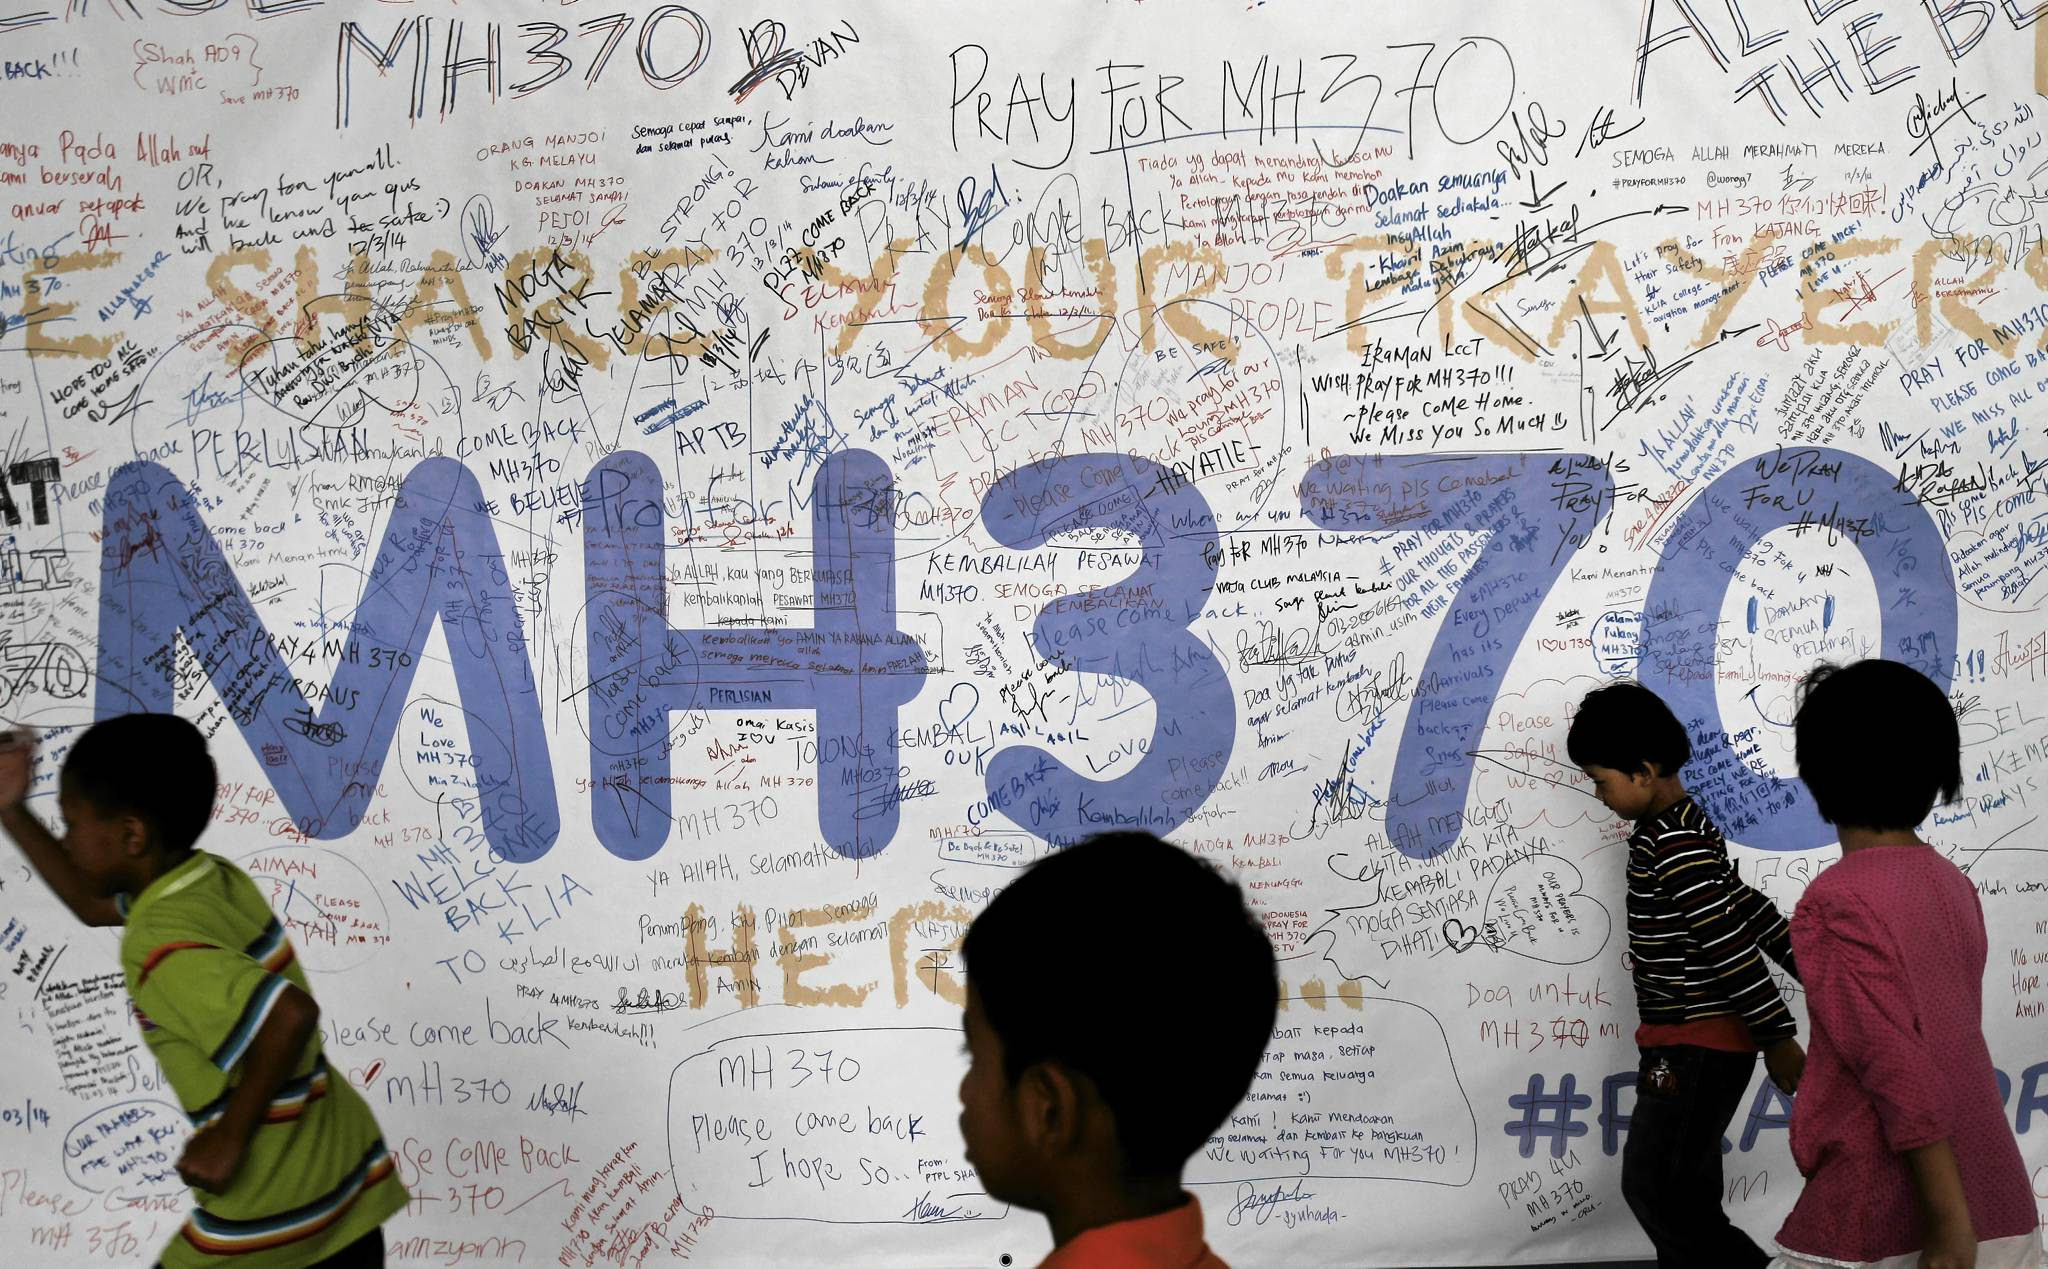 FILE - In this March 13, 2014, photo, children run past dedication messages left for passengers and others involved with the missing Malaysia Airlines jetliner MH370 on the walls of the Kuala Lumpur International Airport, in Sepang, Malaysia. Part of the mystery of what happened to a Malaysia Airlines plane that vanished last year may be solved with air safety investigators confident that debris found in the Indian Ocean is a wing part unique to the Boeing 777, the same model as the missing jet, a U.S. official said Wednesday, July 29, 2015. Air safety investigators - one of them a Boeing investigator -have identified the component that was found on the French island of Reunion in the western Indian Ocean as a